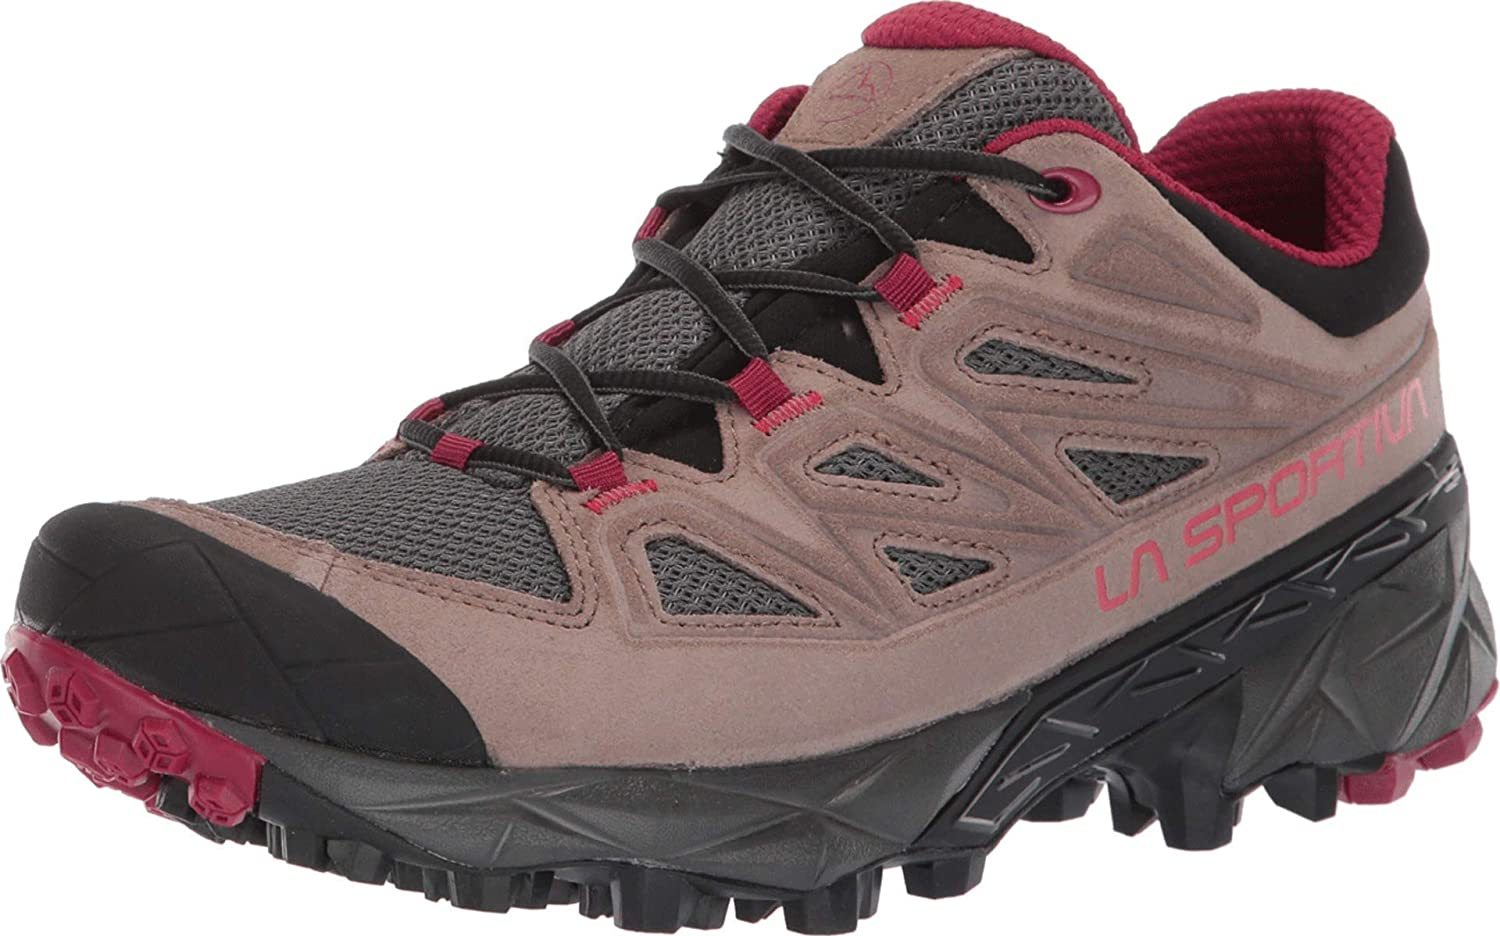 La Sportiva Trail Ridge Low Women's Hiking Shoe